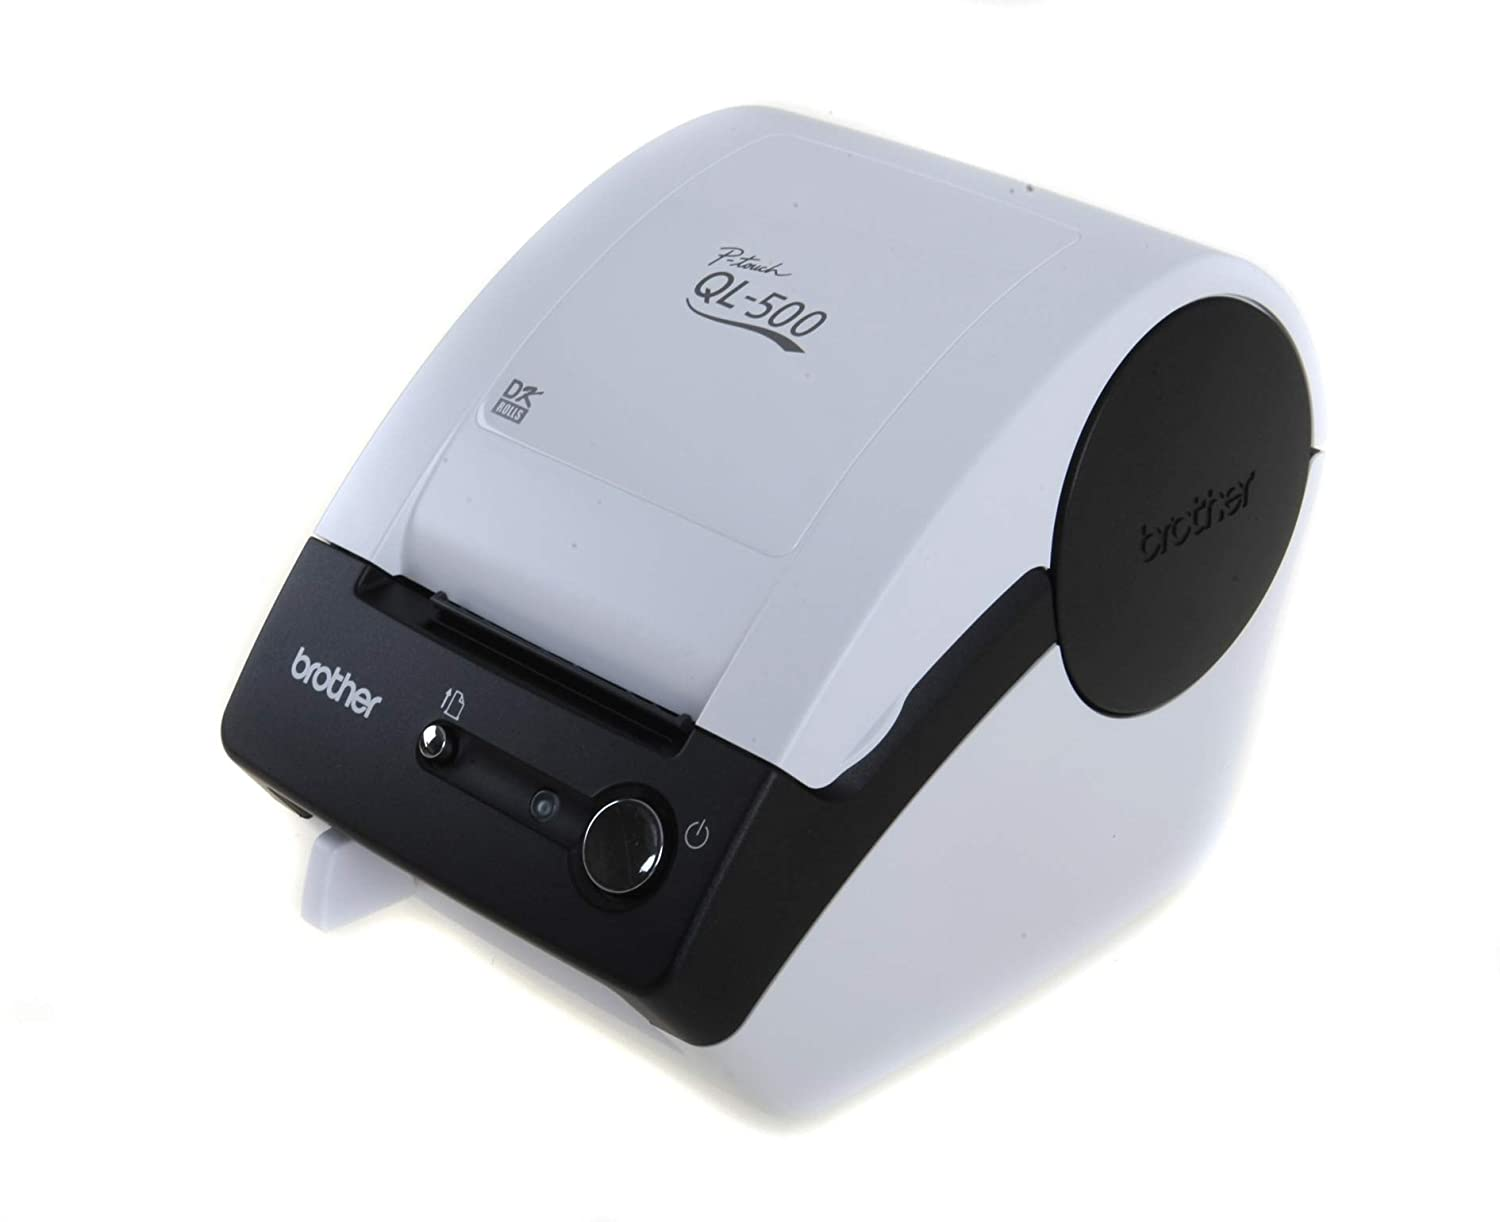 Brother QL-500 Thermal Label Printer - White: Amazon co uk: Office